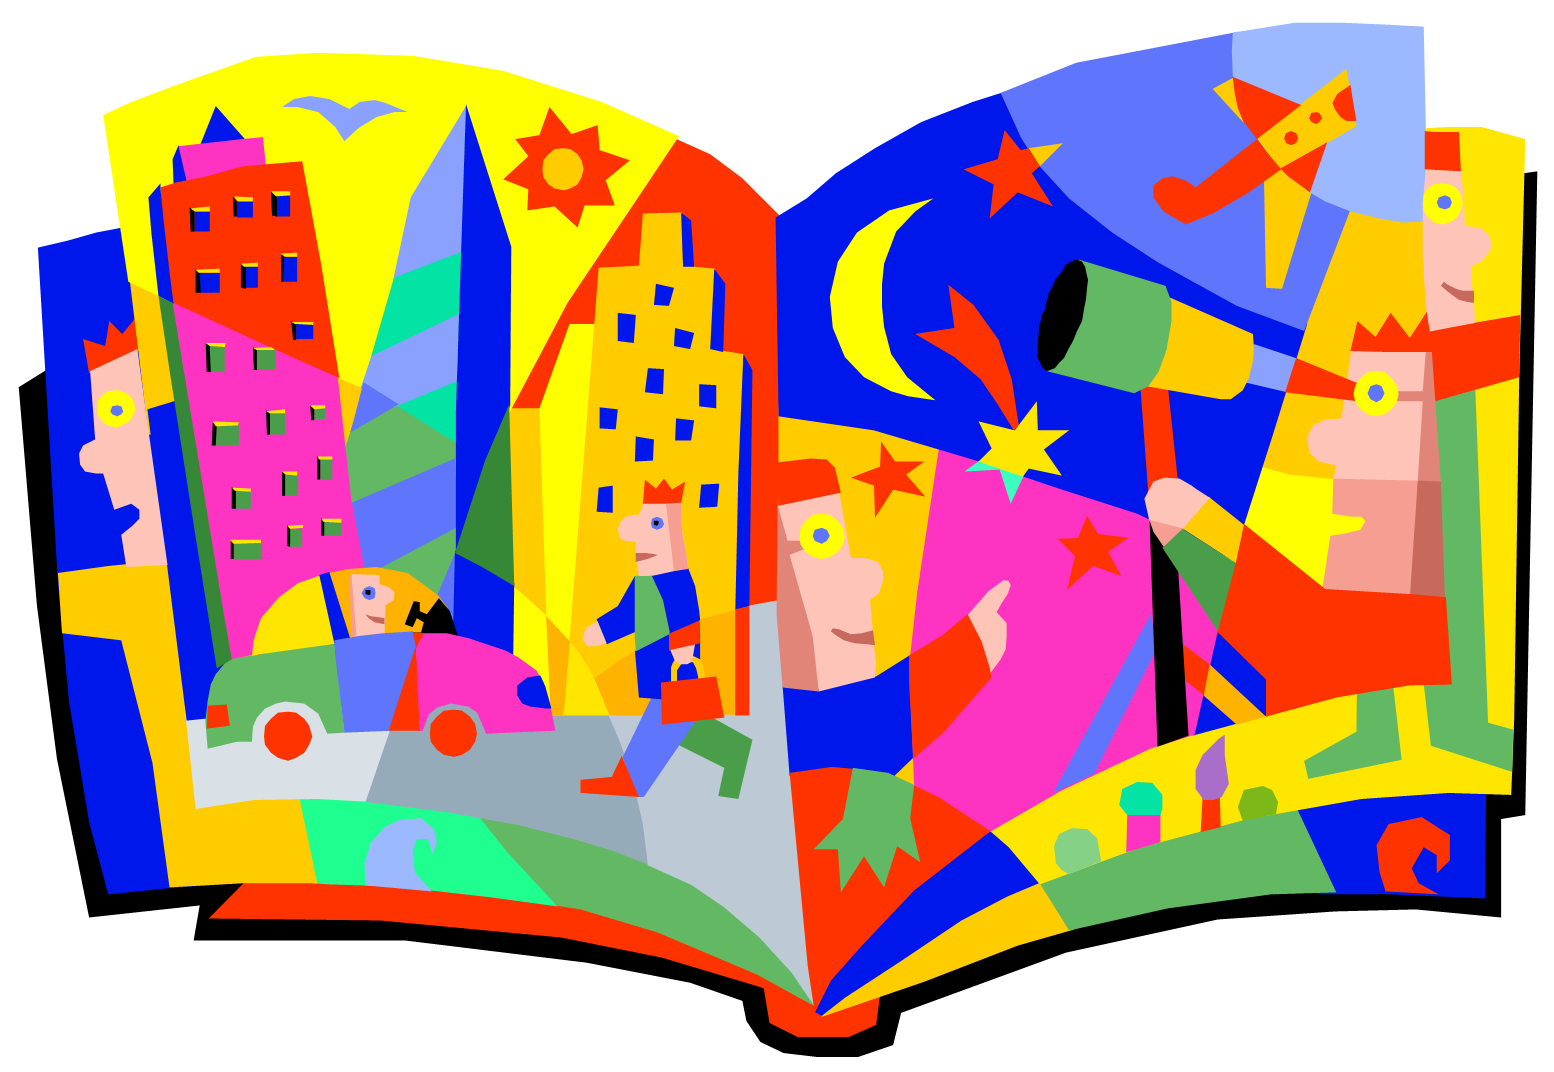 Book story time clipart free picture transparent download Story Book Clipart | Free download best Story Book Clipart on ... picture transparent download